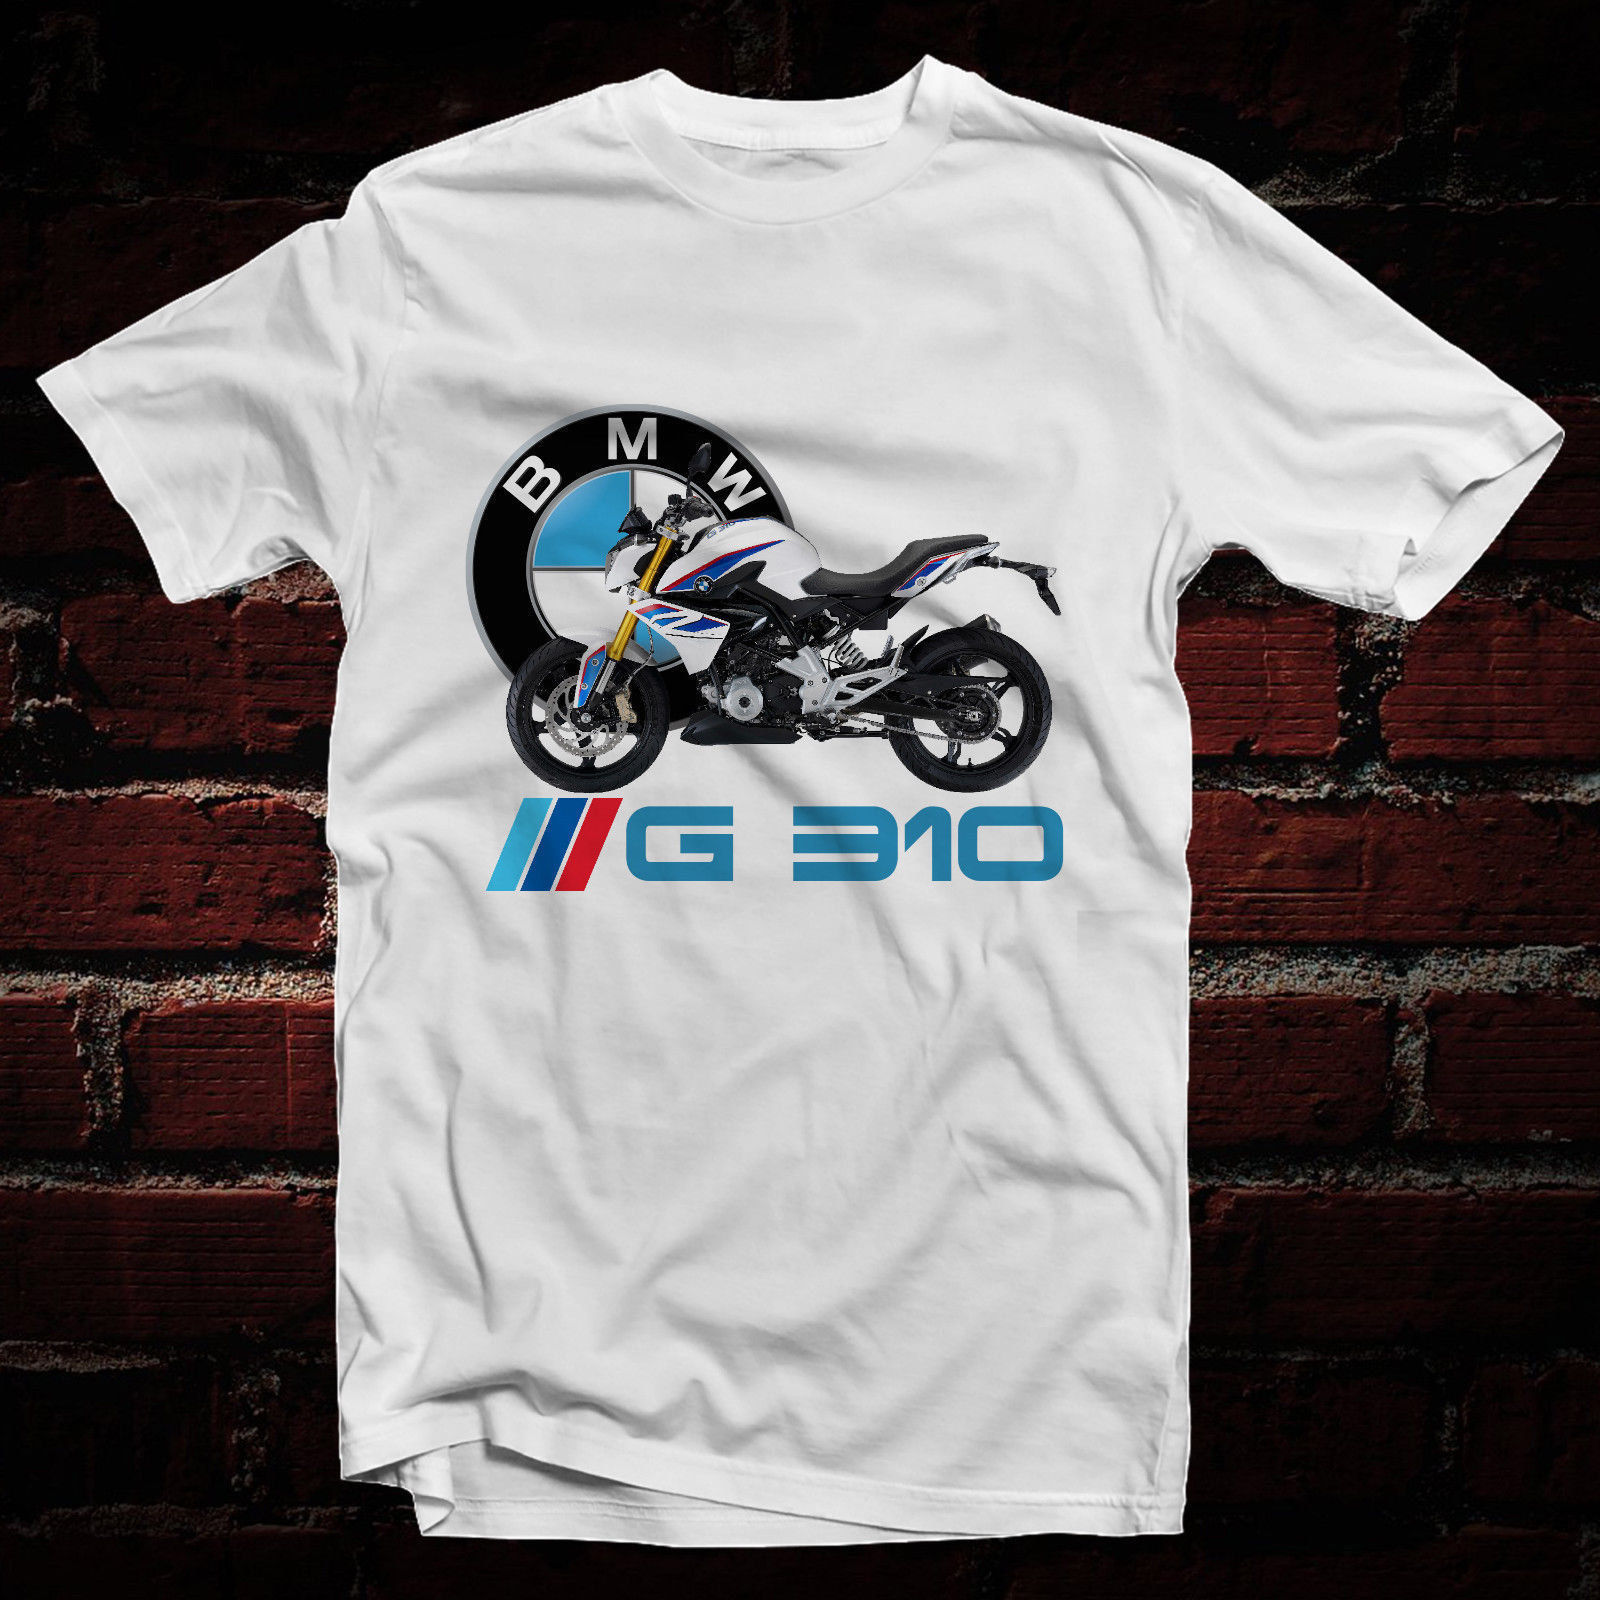 2018 New Casual Cool Tee Shirt 2018 Germany Motorcycle G 310 GS R1200GS M SERIES LOGO WHITE T-SHIRTS ALL SIZE Hot Sale T-shirt